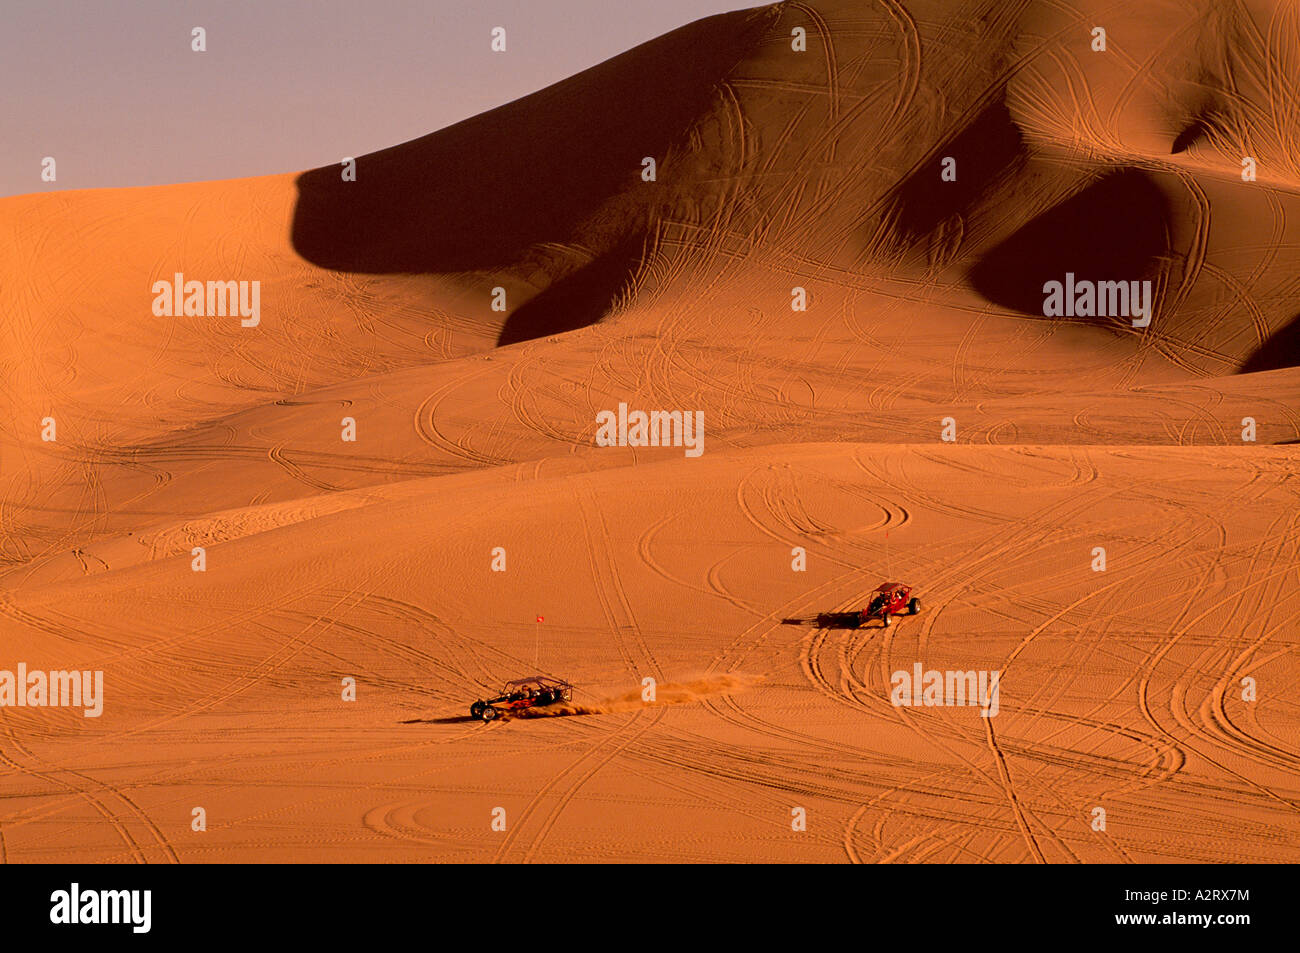 Dune Buggies at the Dumont Sand Dunes near Death Valley National Park California USA - Stock Image